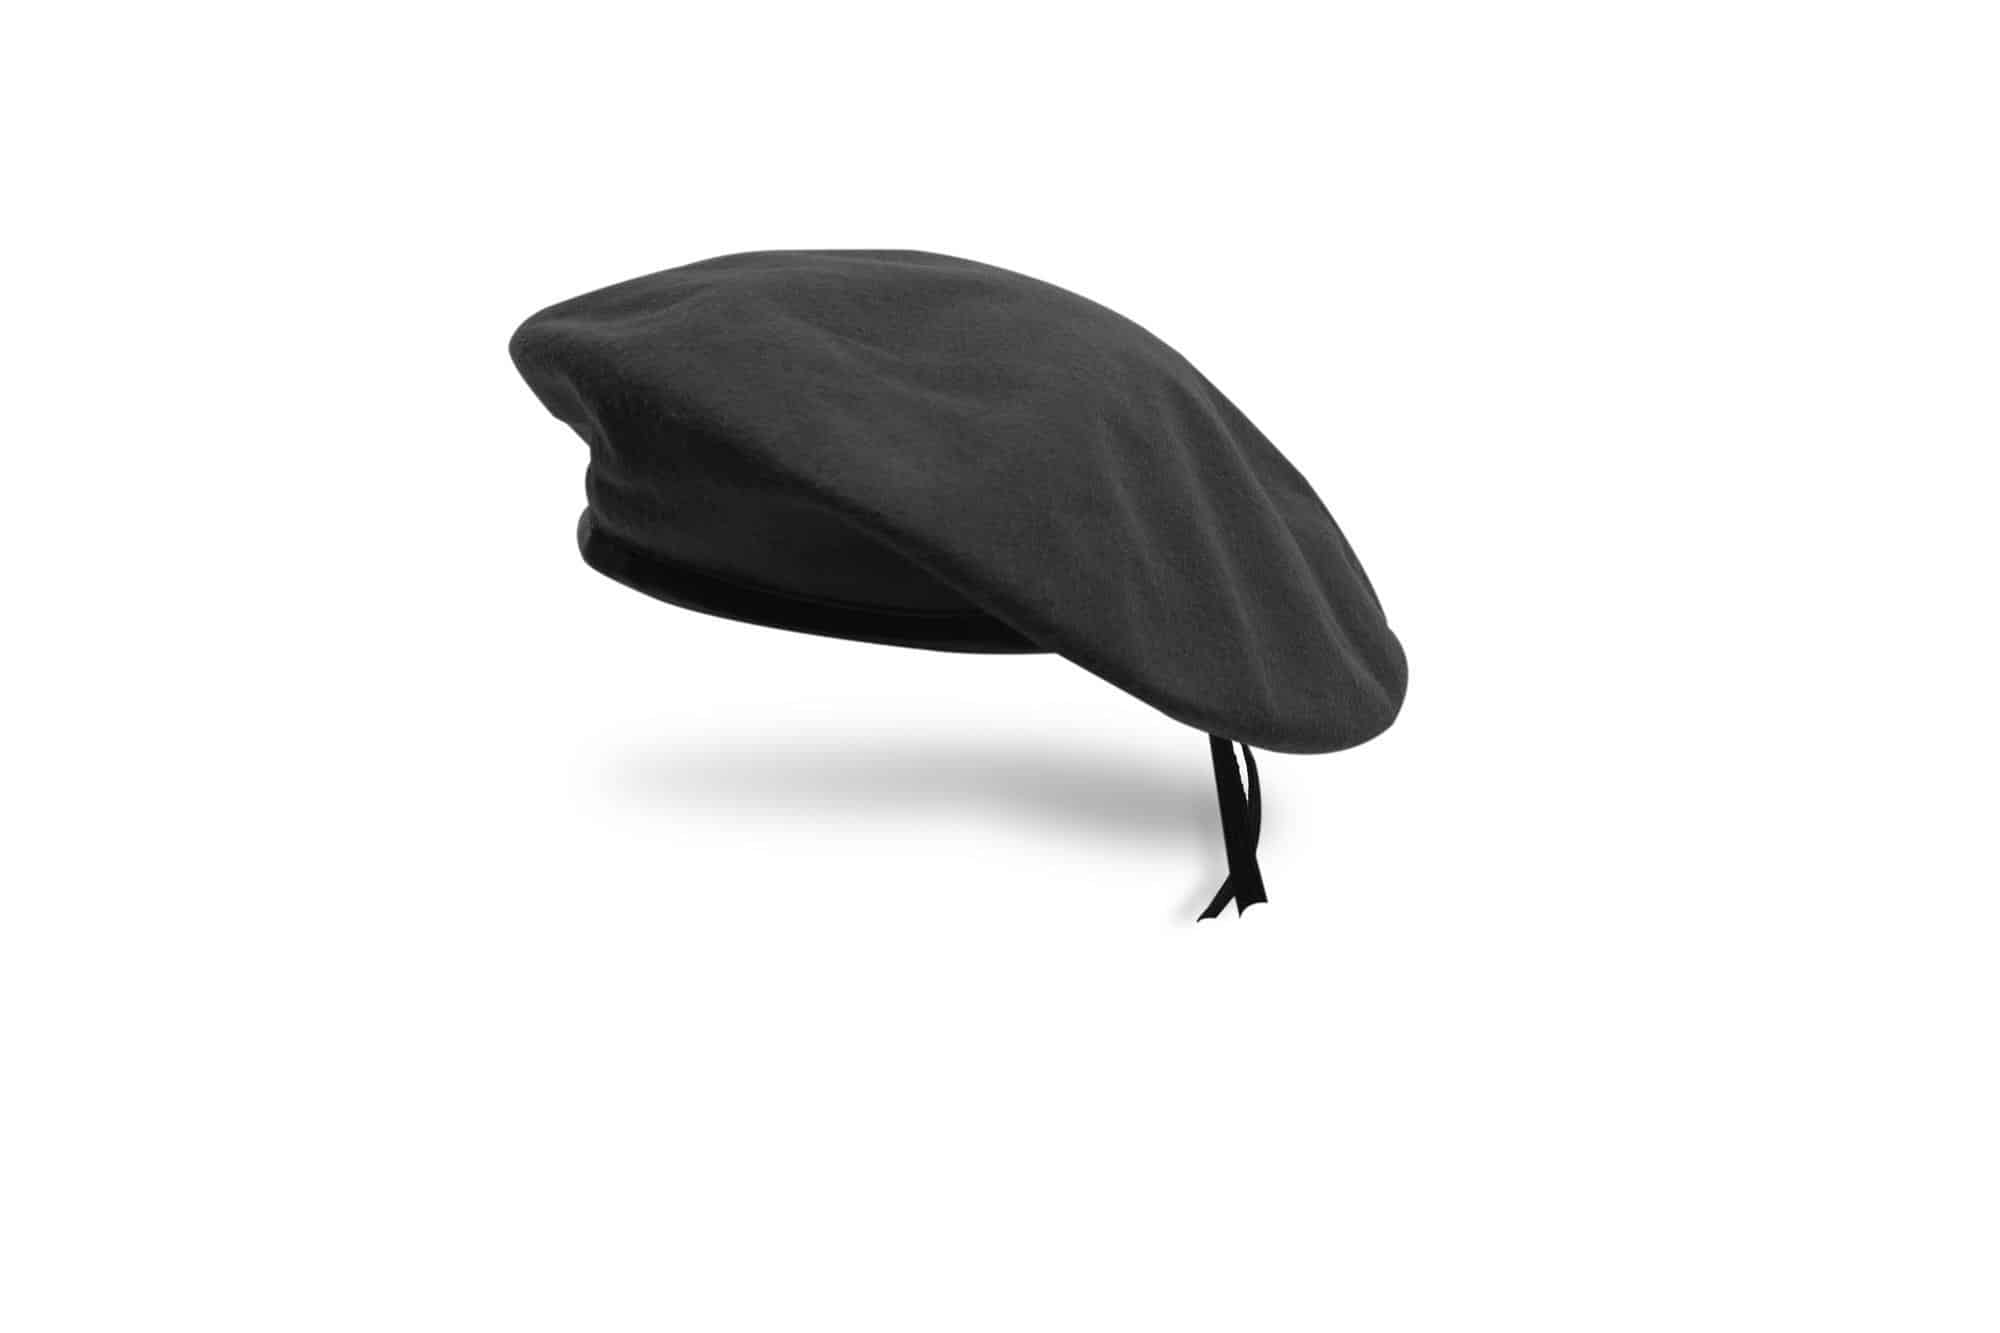 Beret Headwear and Accessories